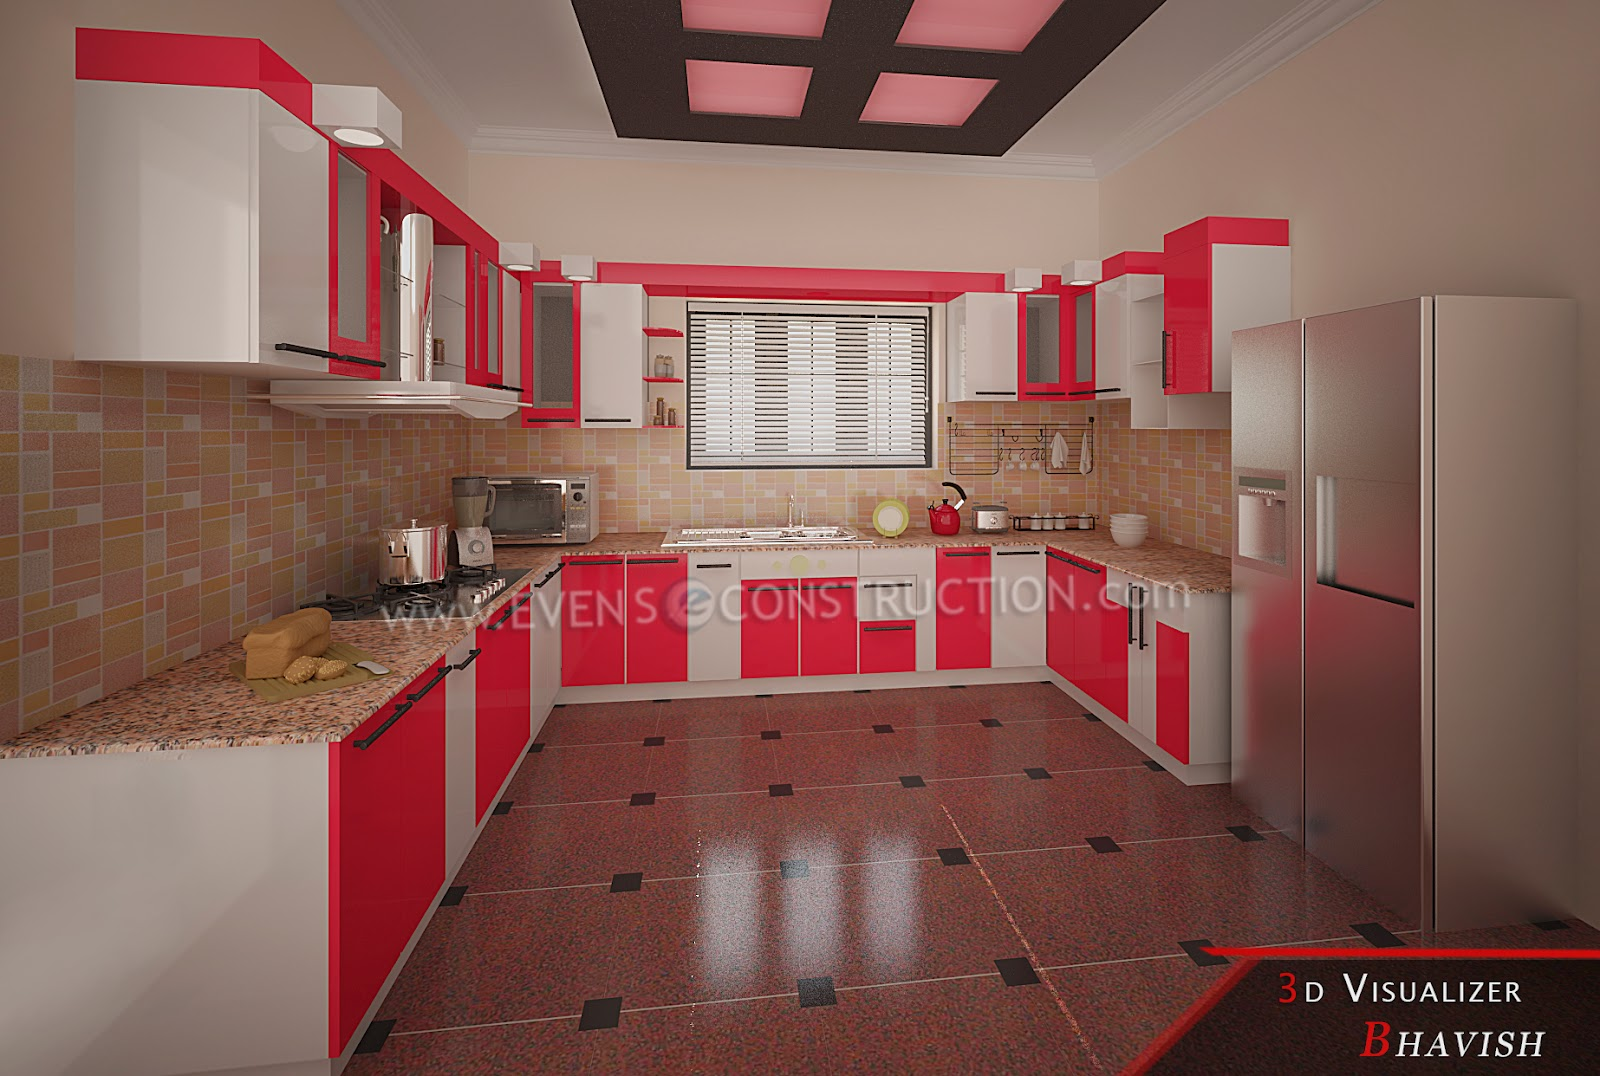 evens construction pvt ltd: modern kitchen interior for